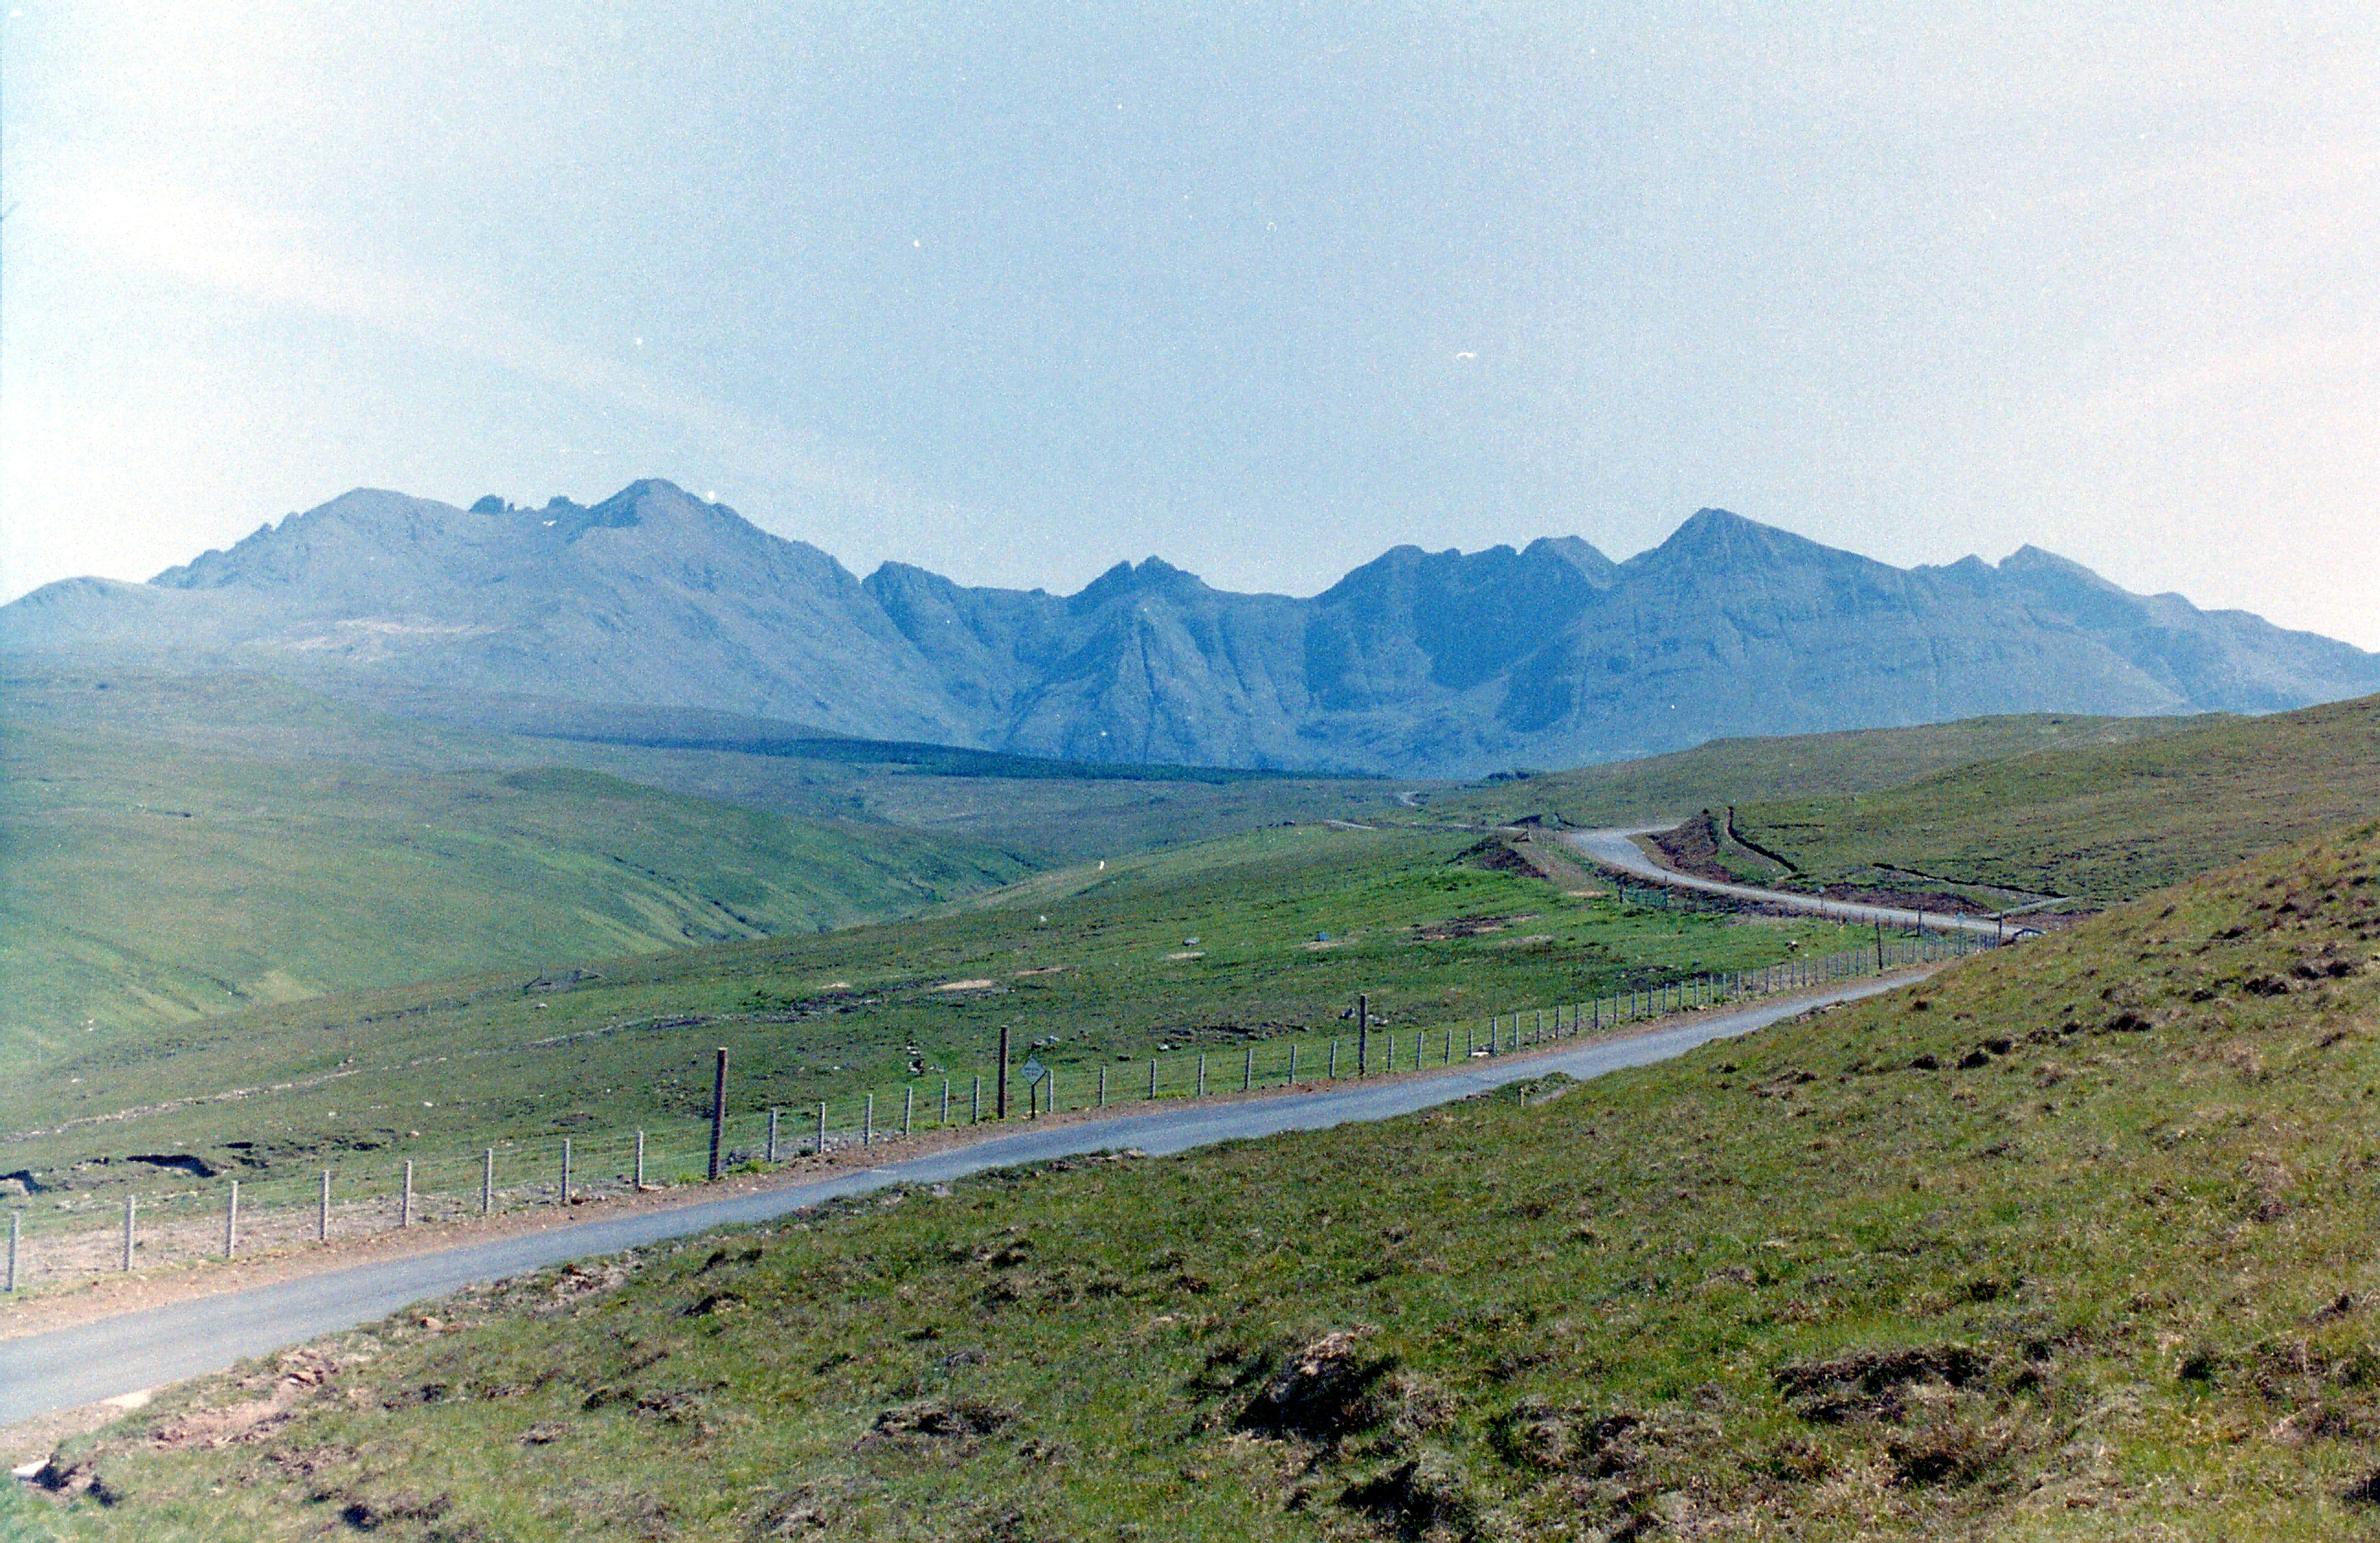 1993 - The Cuillin Ridge of Skye